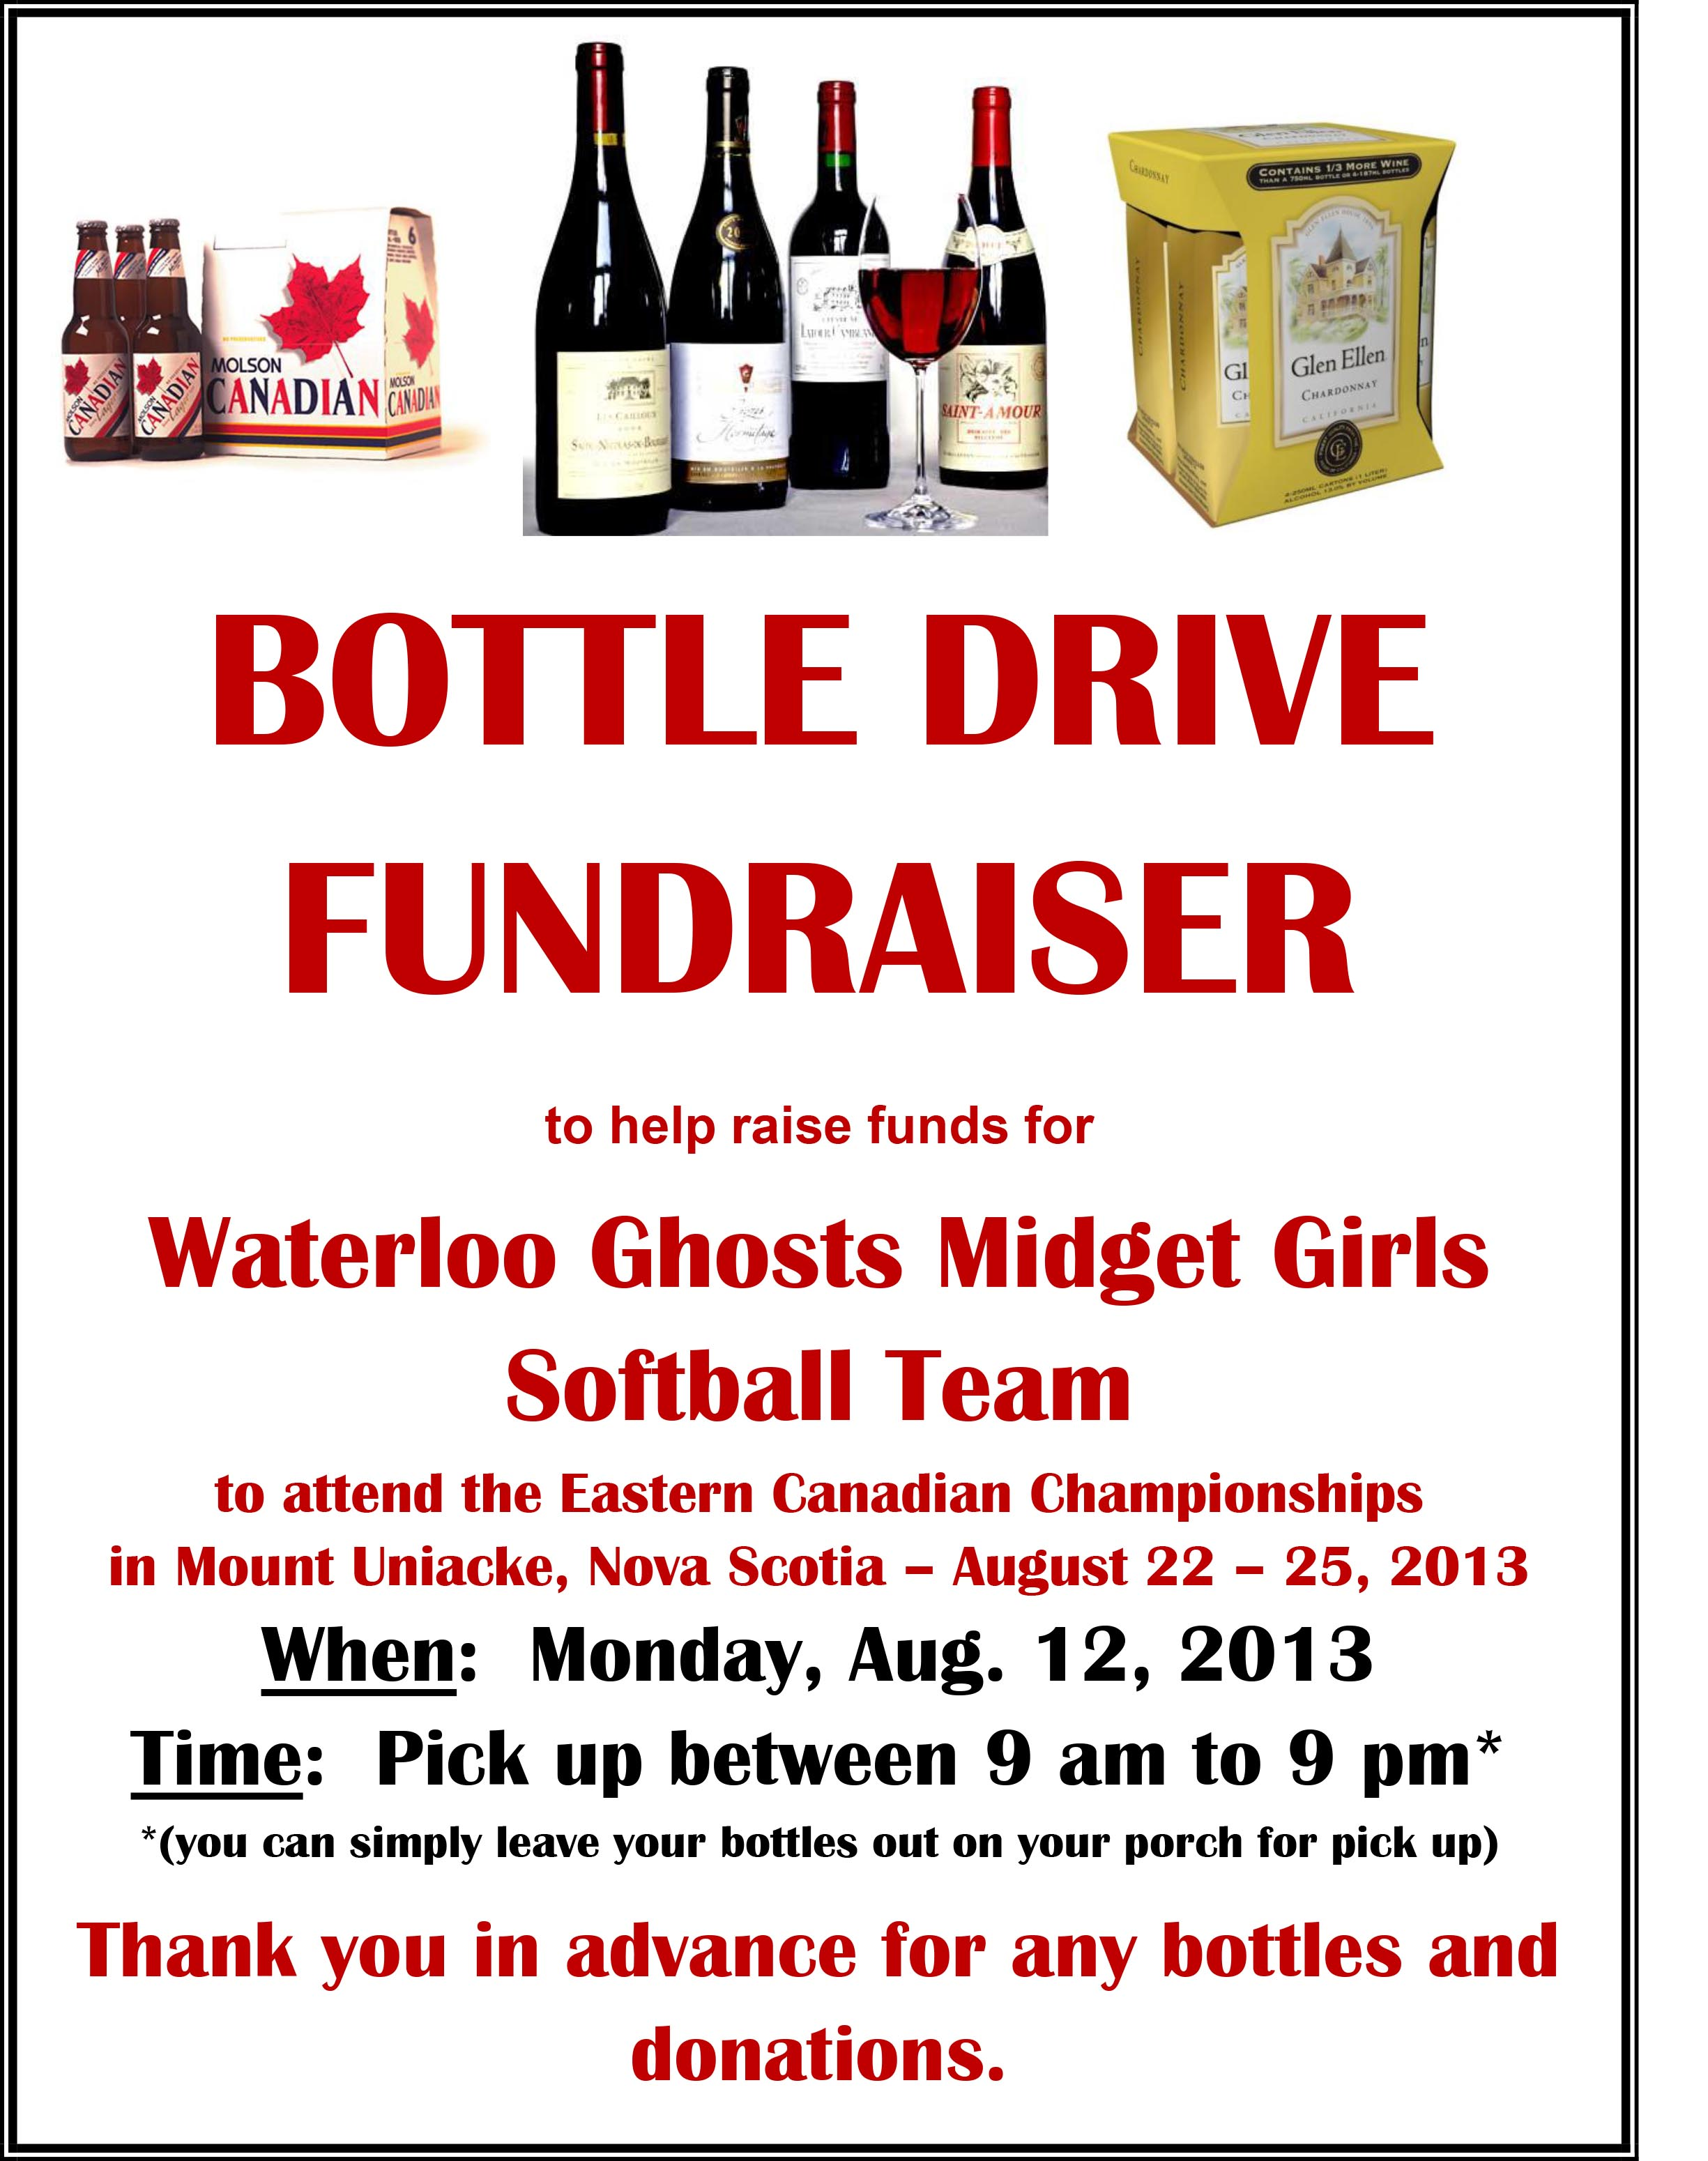 bottle drive fundraiser for waterloo ghosts midget girls softball clipart free download softball clipart images free